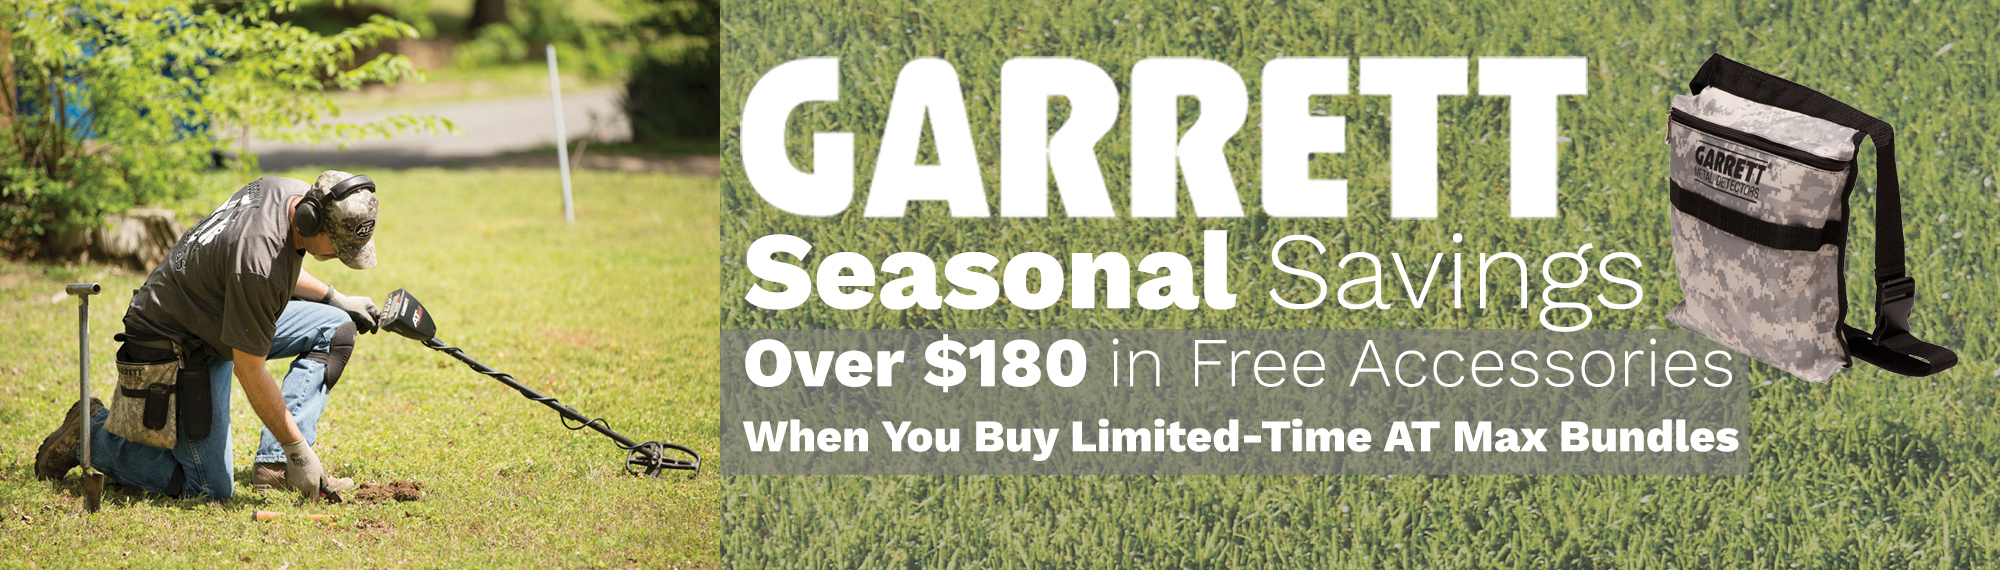 Garrett AT Max Fall Special Bundles 2021 Save Over $180 on Accessories when You Purchase a Special Bundle